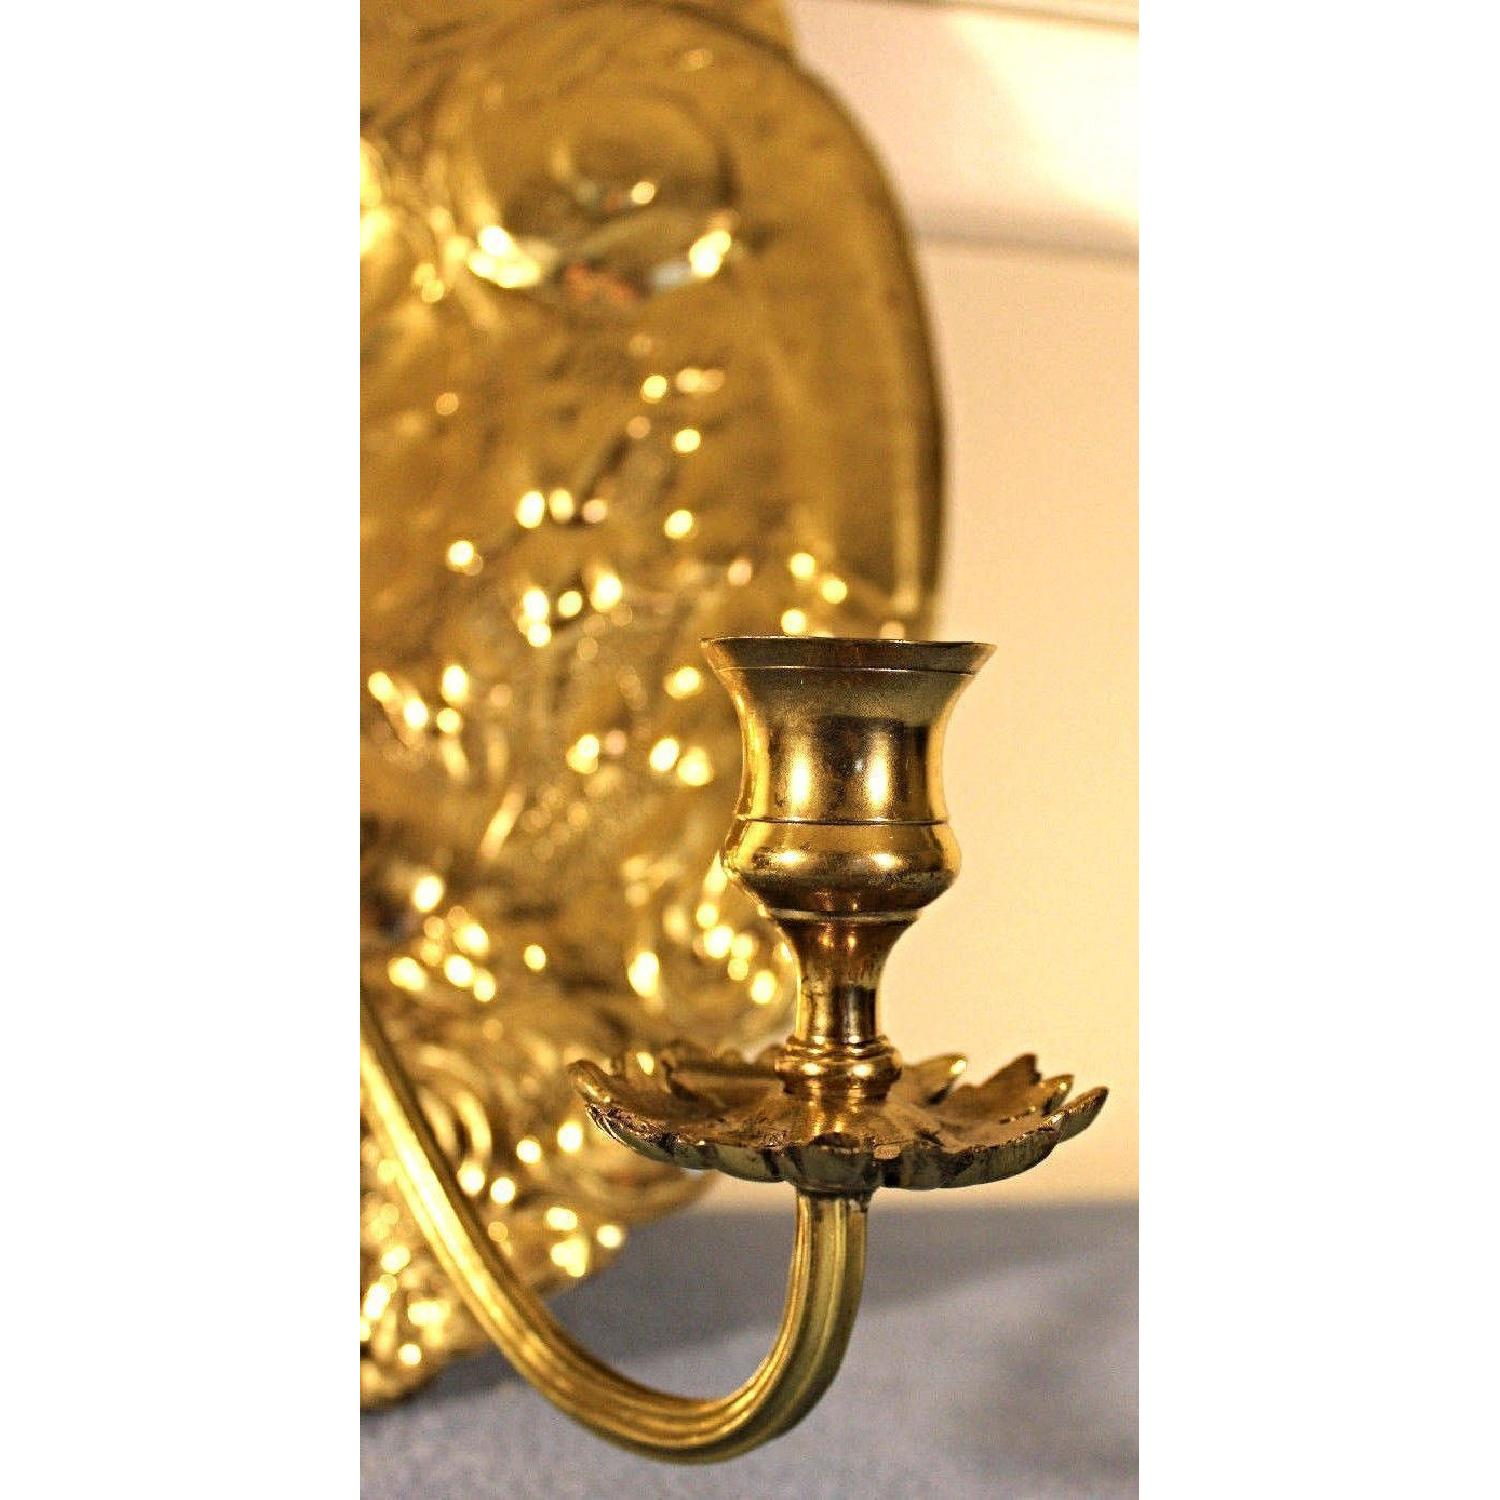 Mottahedeh Double Baroque Repousse Brass Wall Sconce - AptDeco